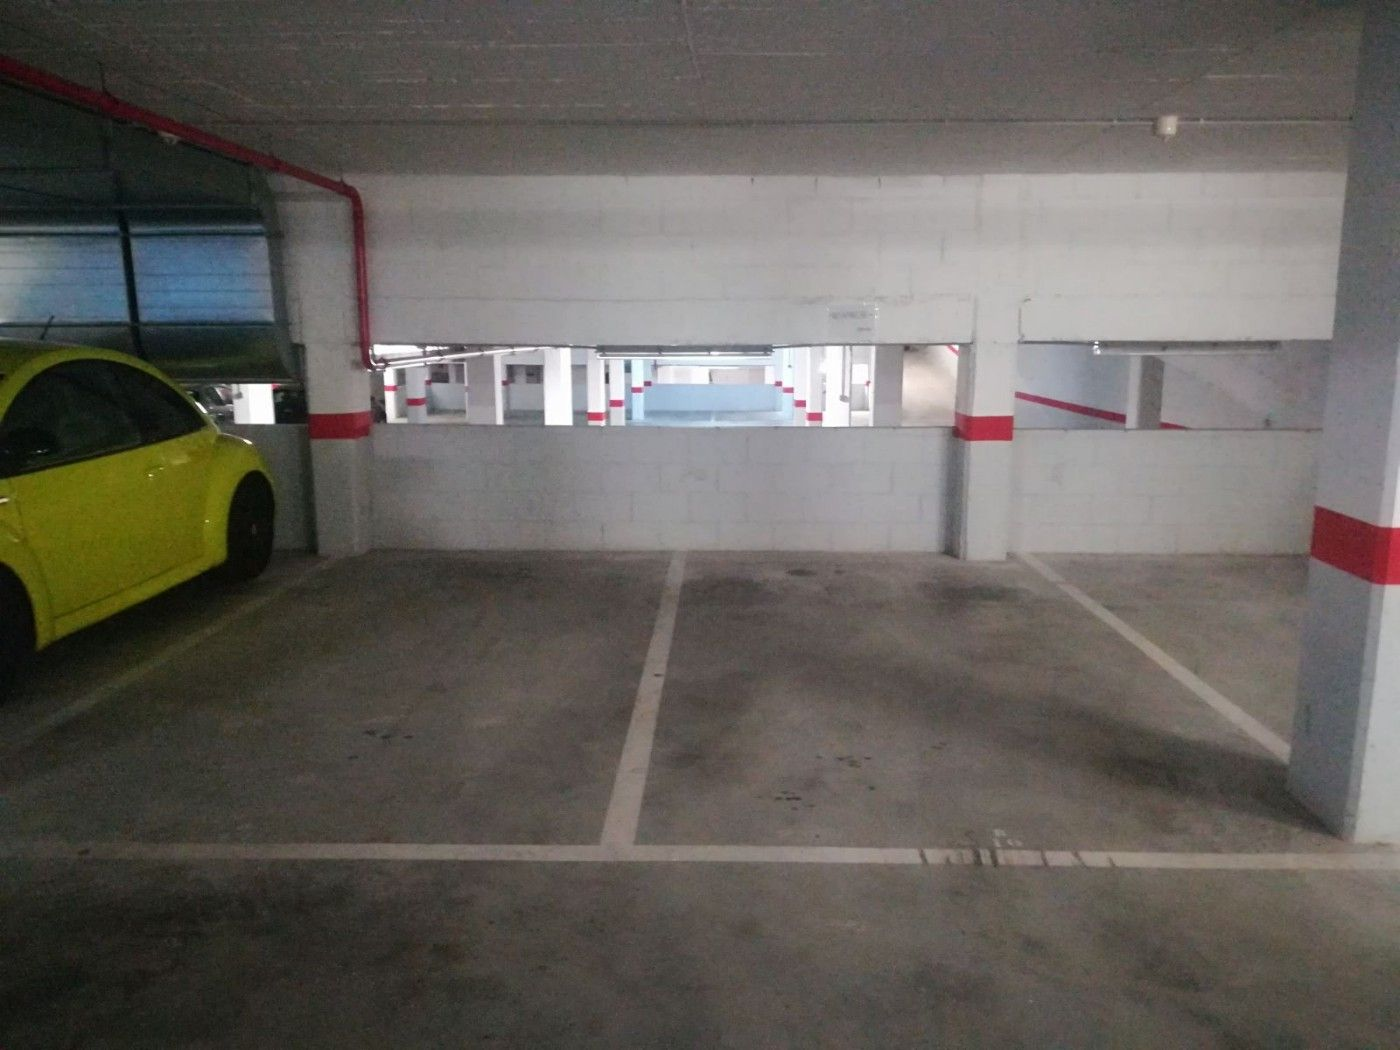 Rent Car parking in Carrer mallorca, 51. En plaza cataluña!!